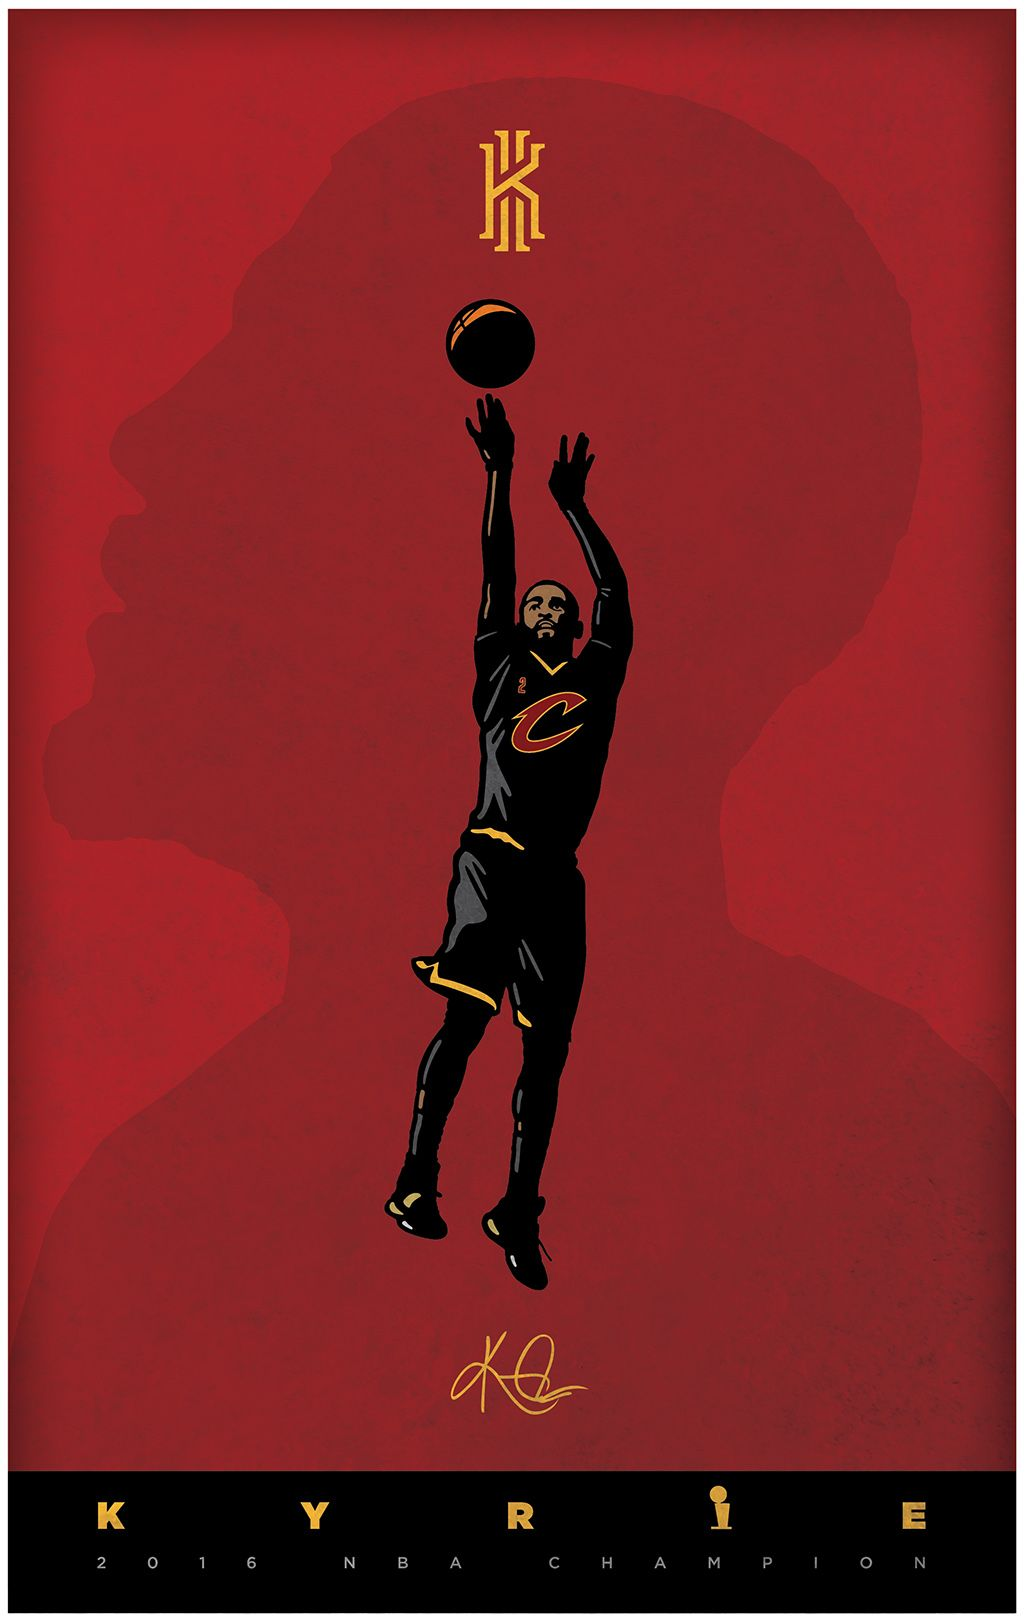 Kyrie Irving poster designed for my son. My Art